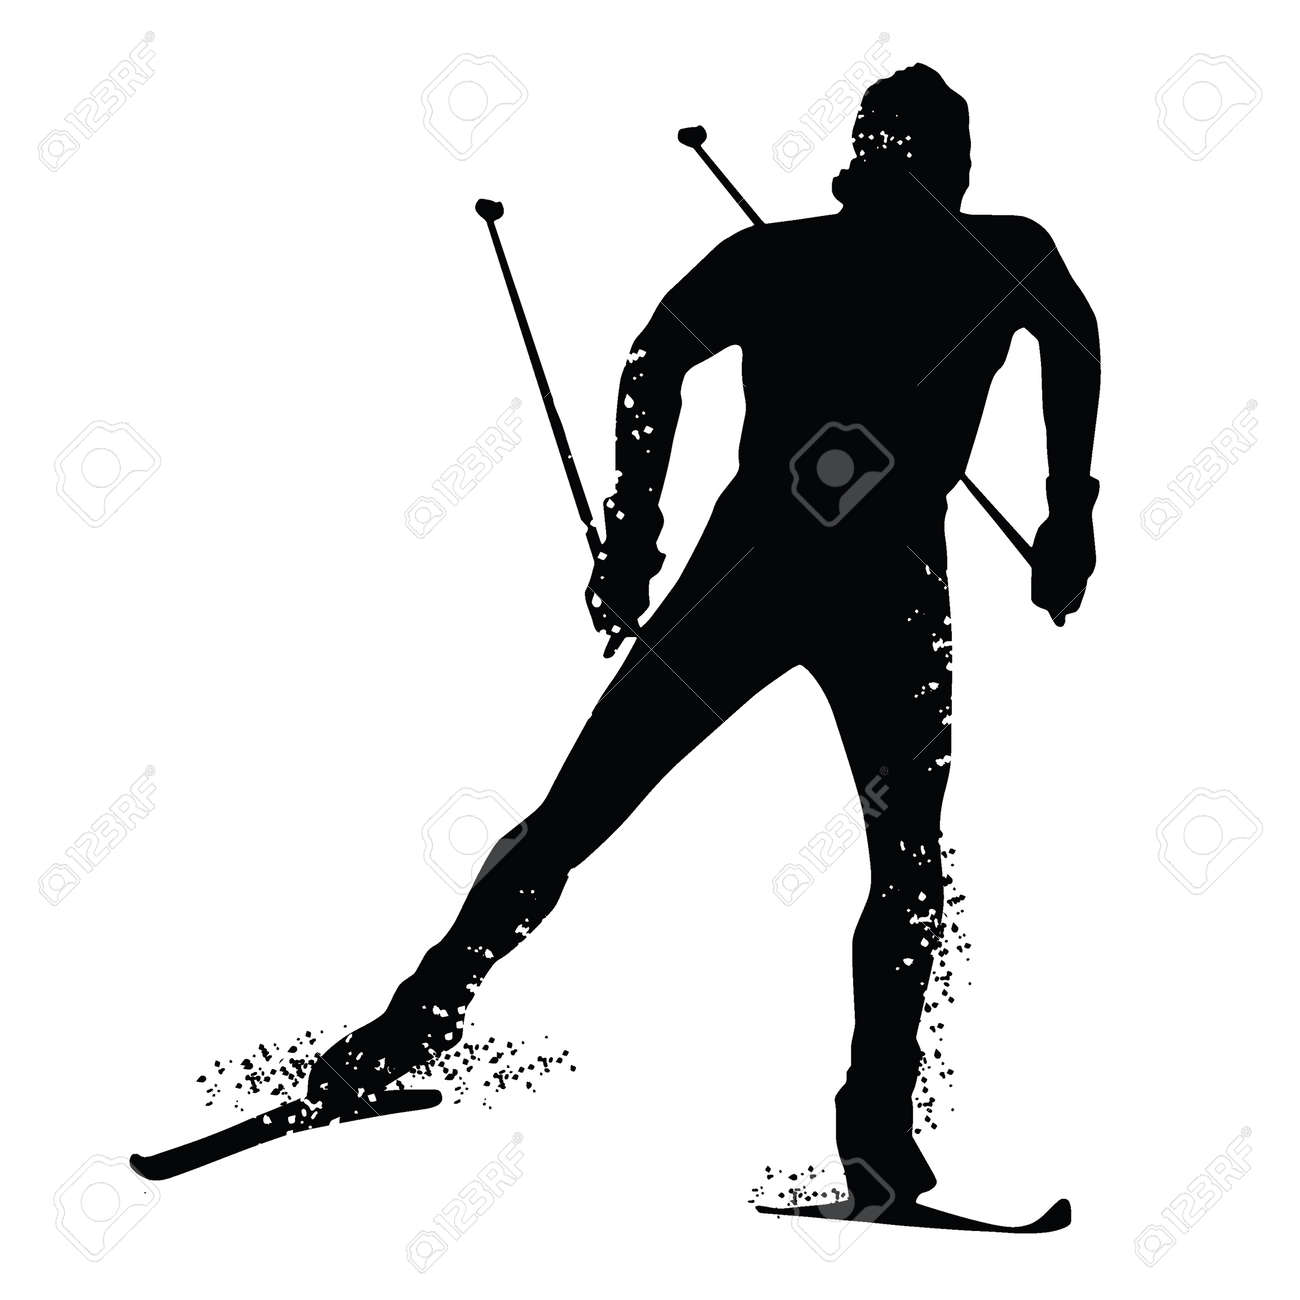 Silhouette Cross Country Skiing Isolated On White Background Vector Illustrations Stock